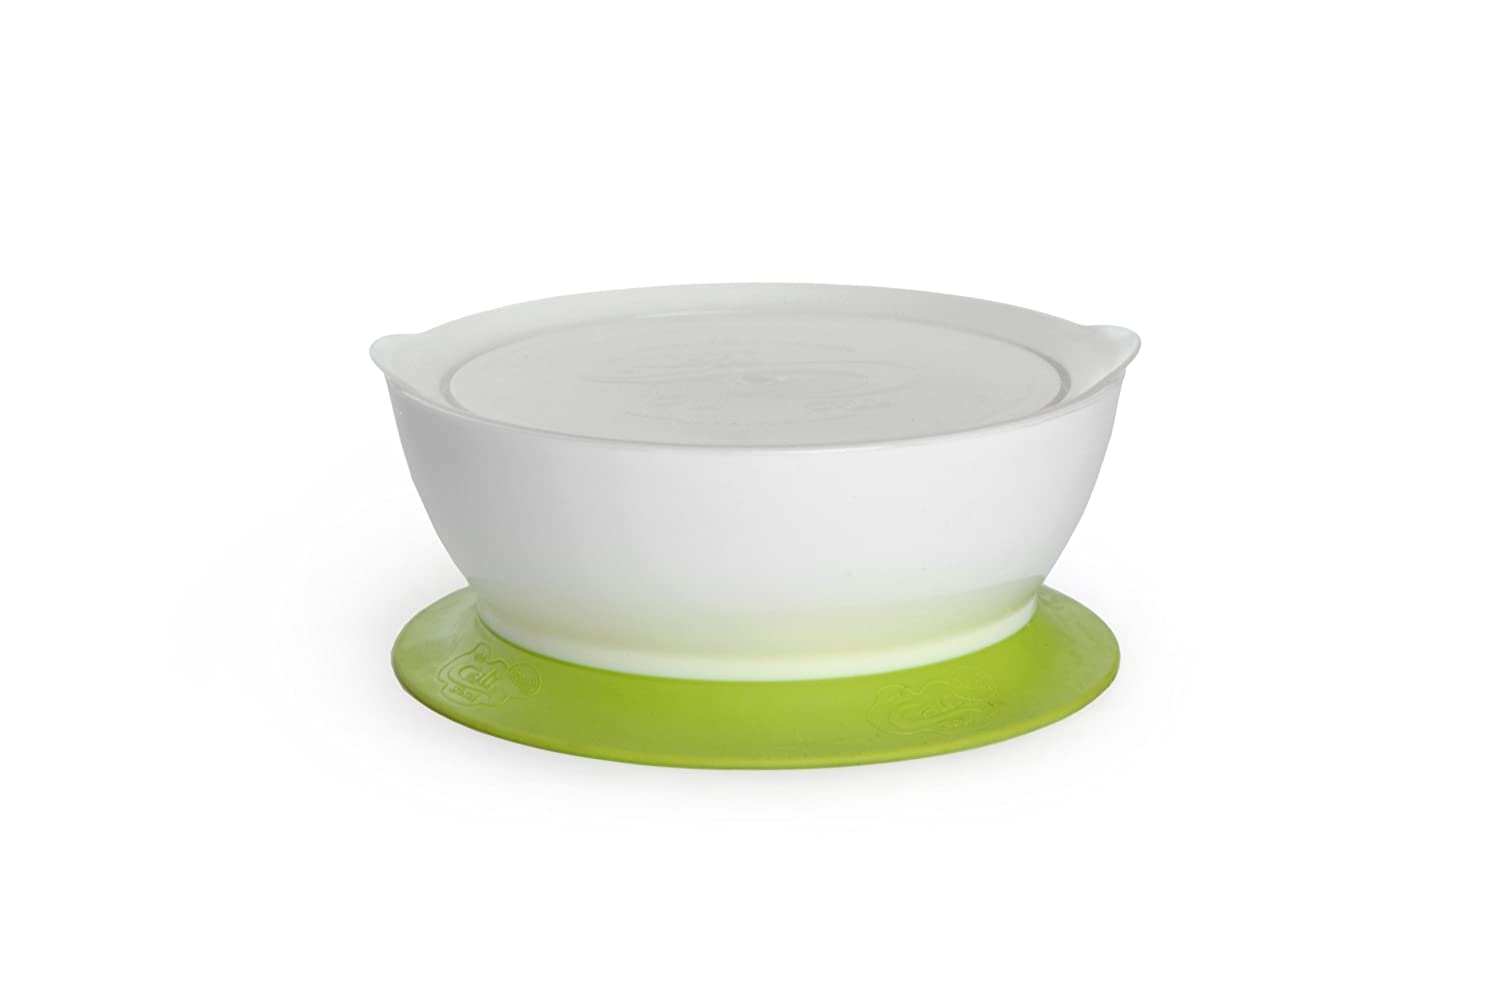 CaliBowl 1-1/2 Cup Suction Bowl And Lid, Green CALIKSG